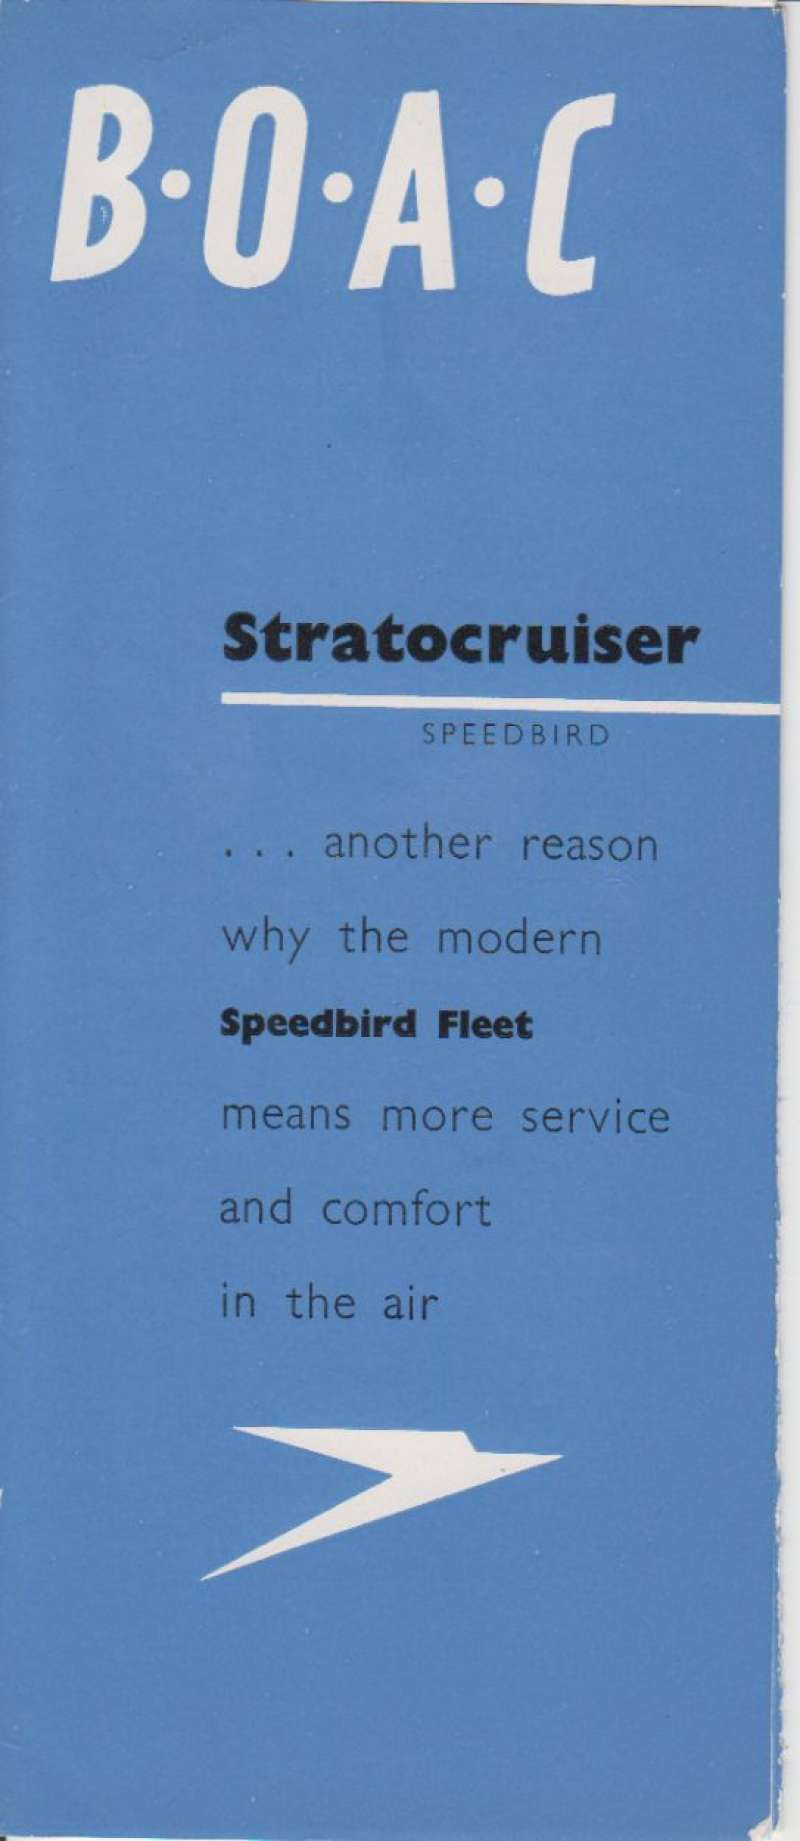 (Ephemera) BOAC Stratocruiser brochure coloured brochure showing superb cut out of the accommodation and layout of the new BOACC double deck Stratocruiser Speedbird,  published 1949, 52 x 22 cm folded x6. Image